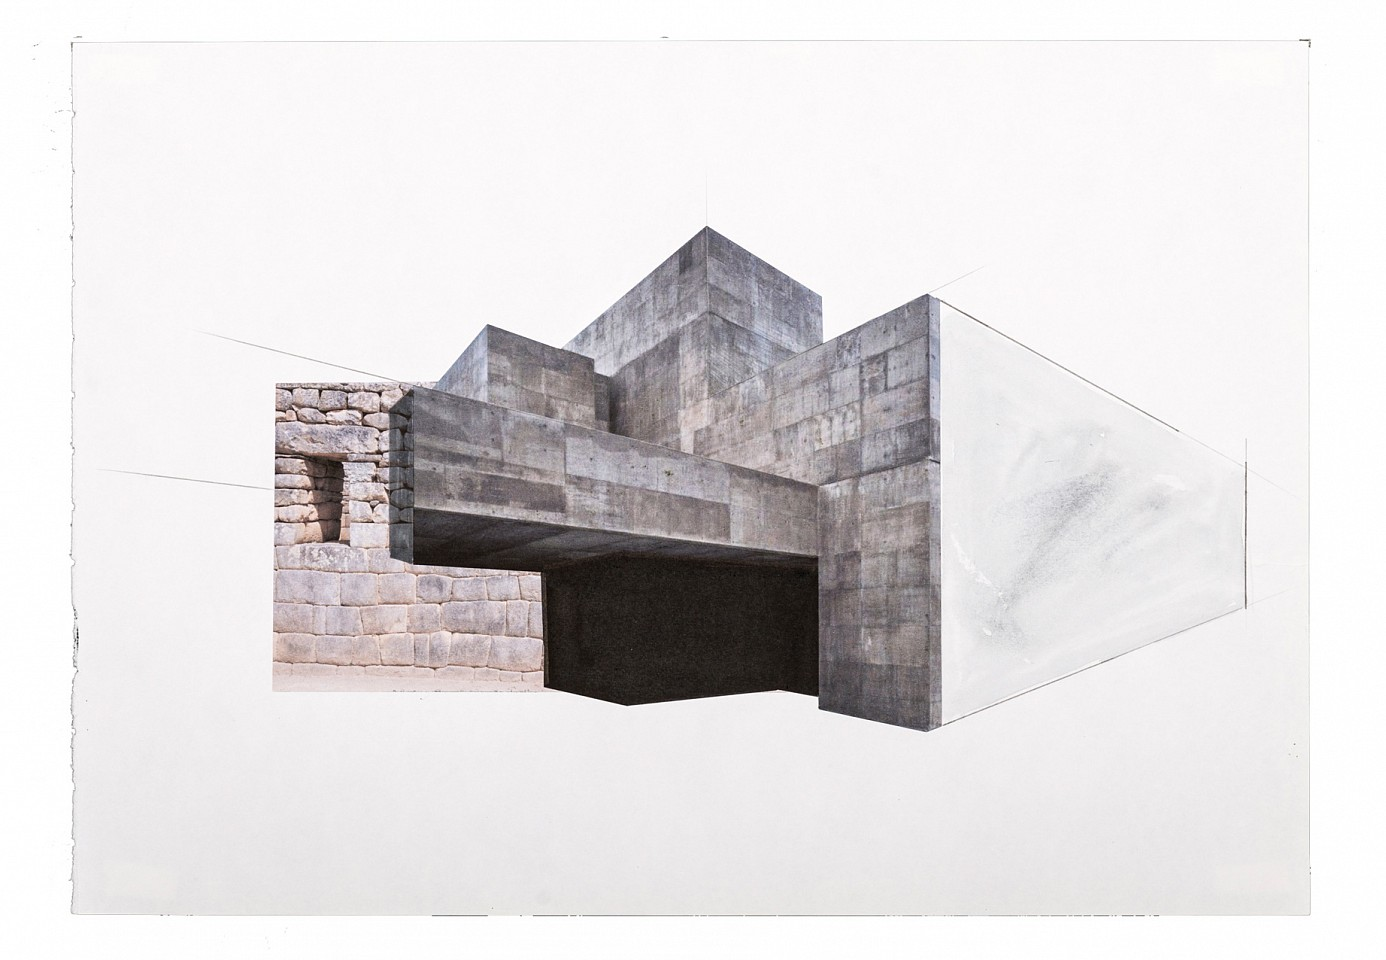 """<p><span class=""""viewer-caption-artist"""">Hazem Harb</span></p> <p><span class=""""viewer-caption-title""""><i>Untitled #3 from the Archaeology of Occupation series</i></span>, <span class=""""viewer-caption-year"""">2015</span></p> <p><span class=""""viewer-caption-media"""">Print Collage</span></p> <p><span class=""""viewer-caption-dimensions"""">30 x 42 cm (11 3/4 x 16 1/2 in.)</span></p> <p><span class=""""viewer-caption-inventory"""">HAH0249</span></p> <p><span class=""""viewer-caption-aux""""></span></p>"""